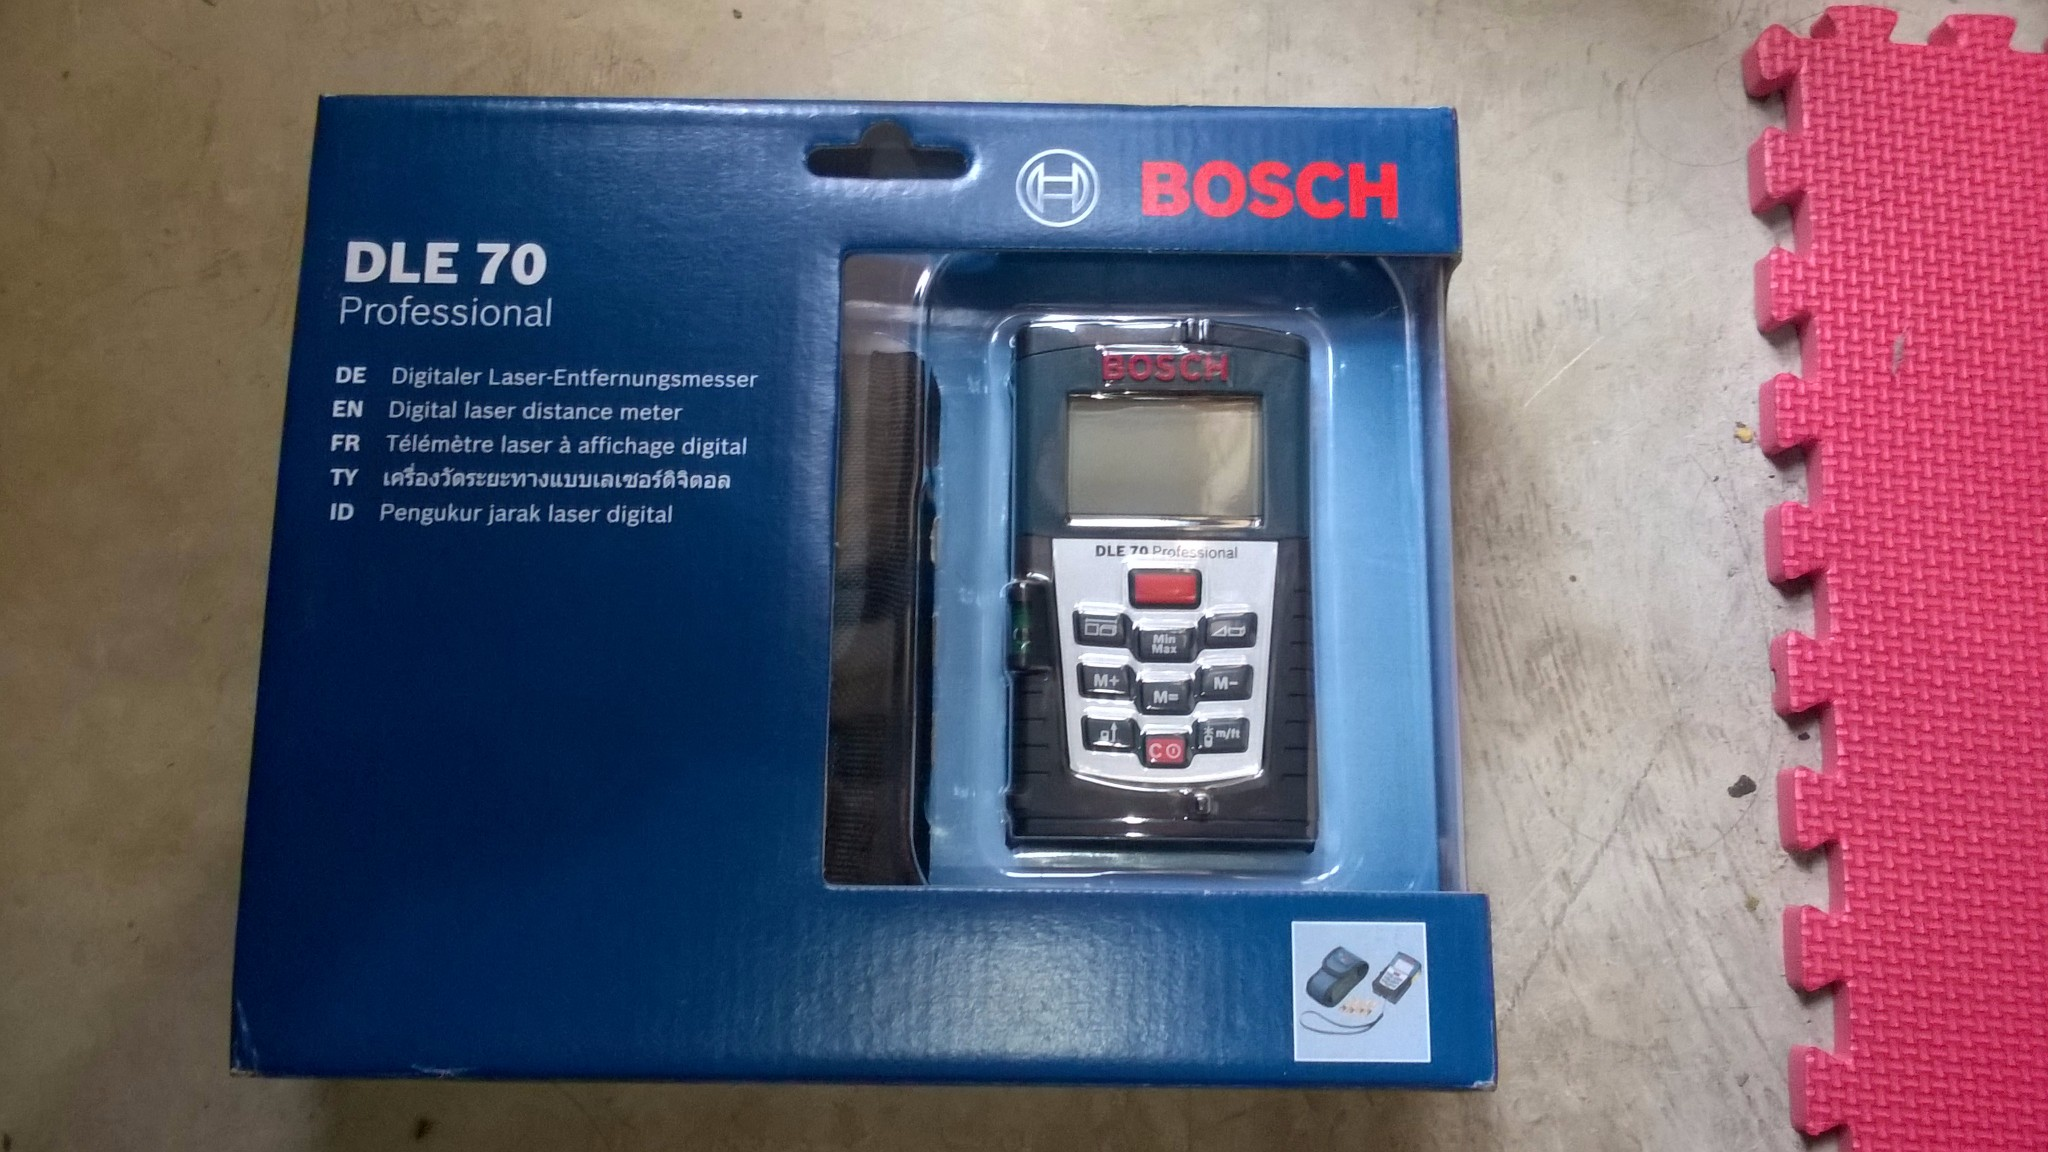 Bosch entfernungsmesser dle professional dungs mb dle b s gas